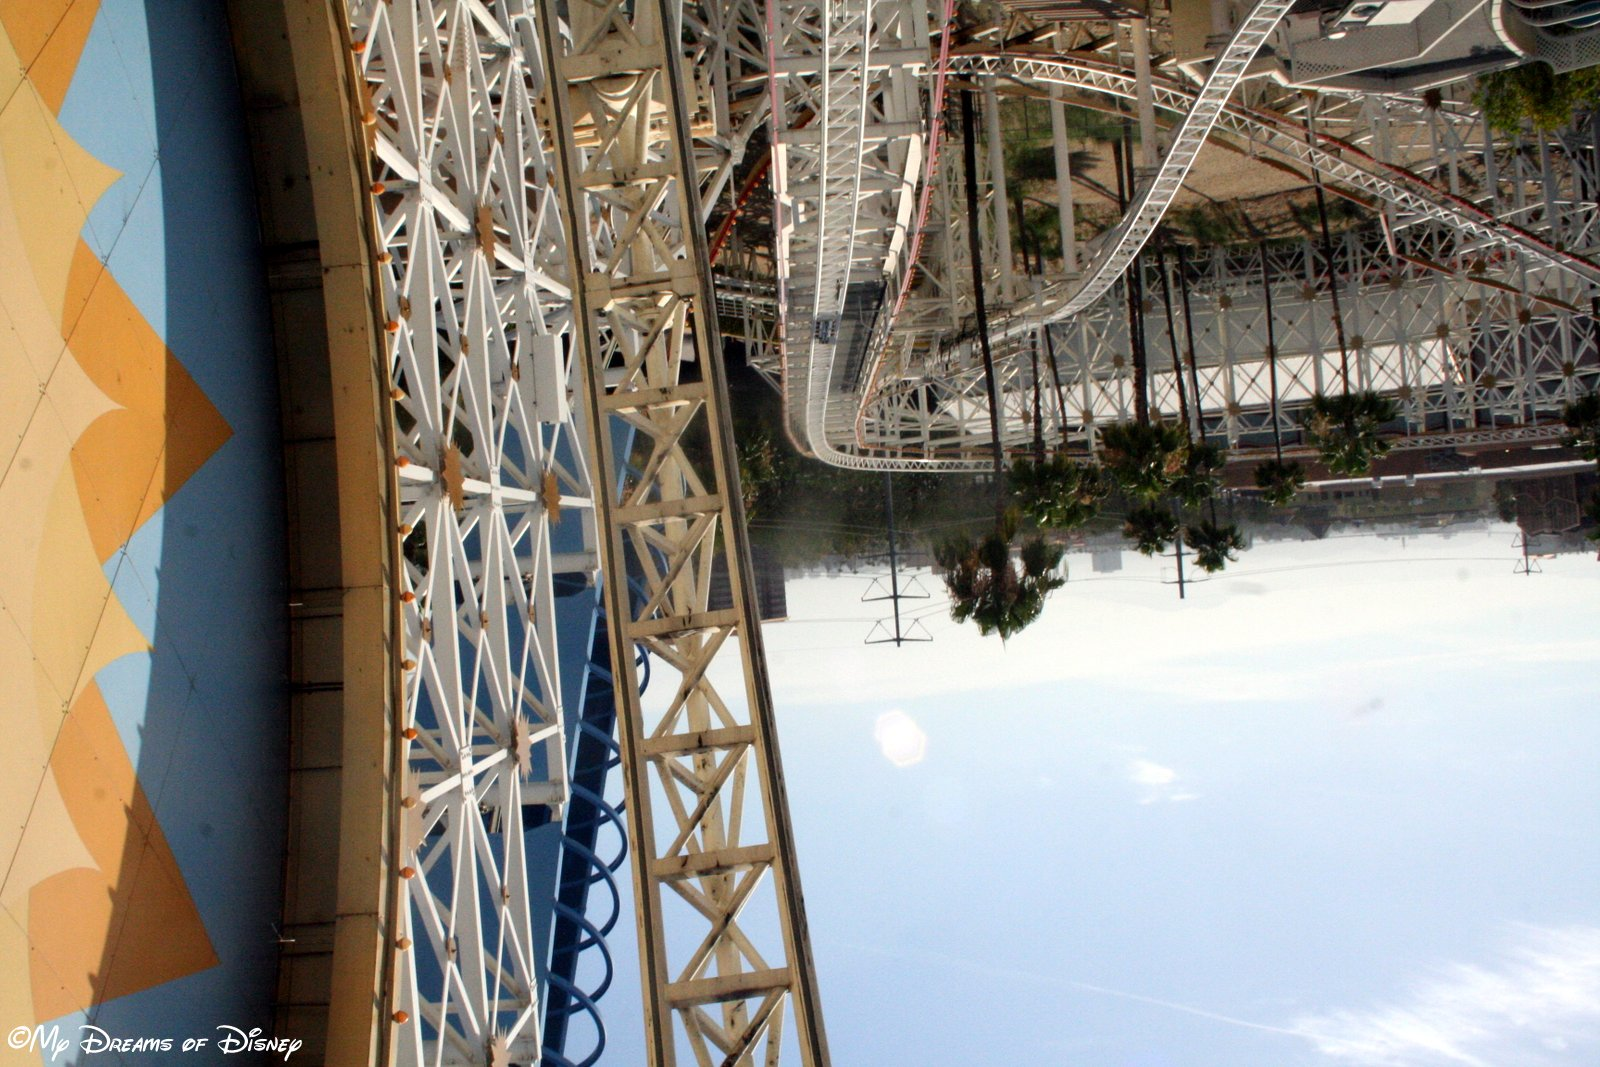 This shot is not deliberately upside down by some trick -- this shot was taken while we were upside down!